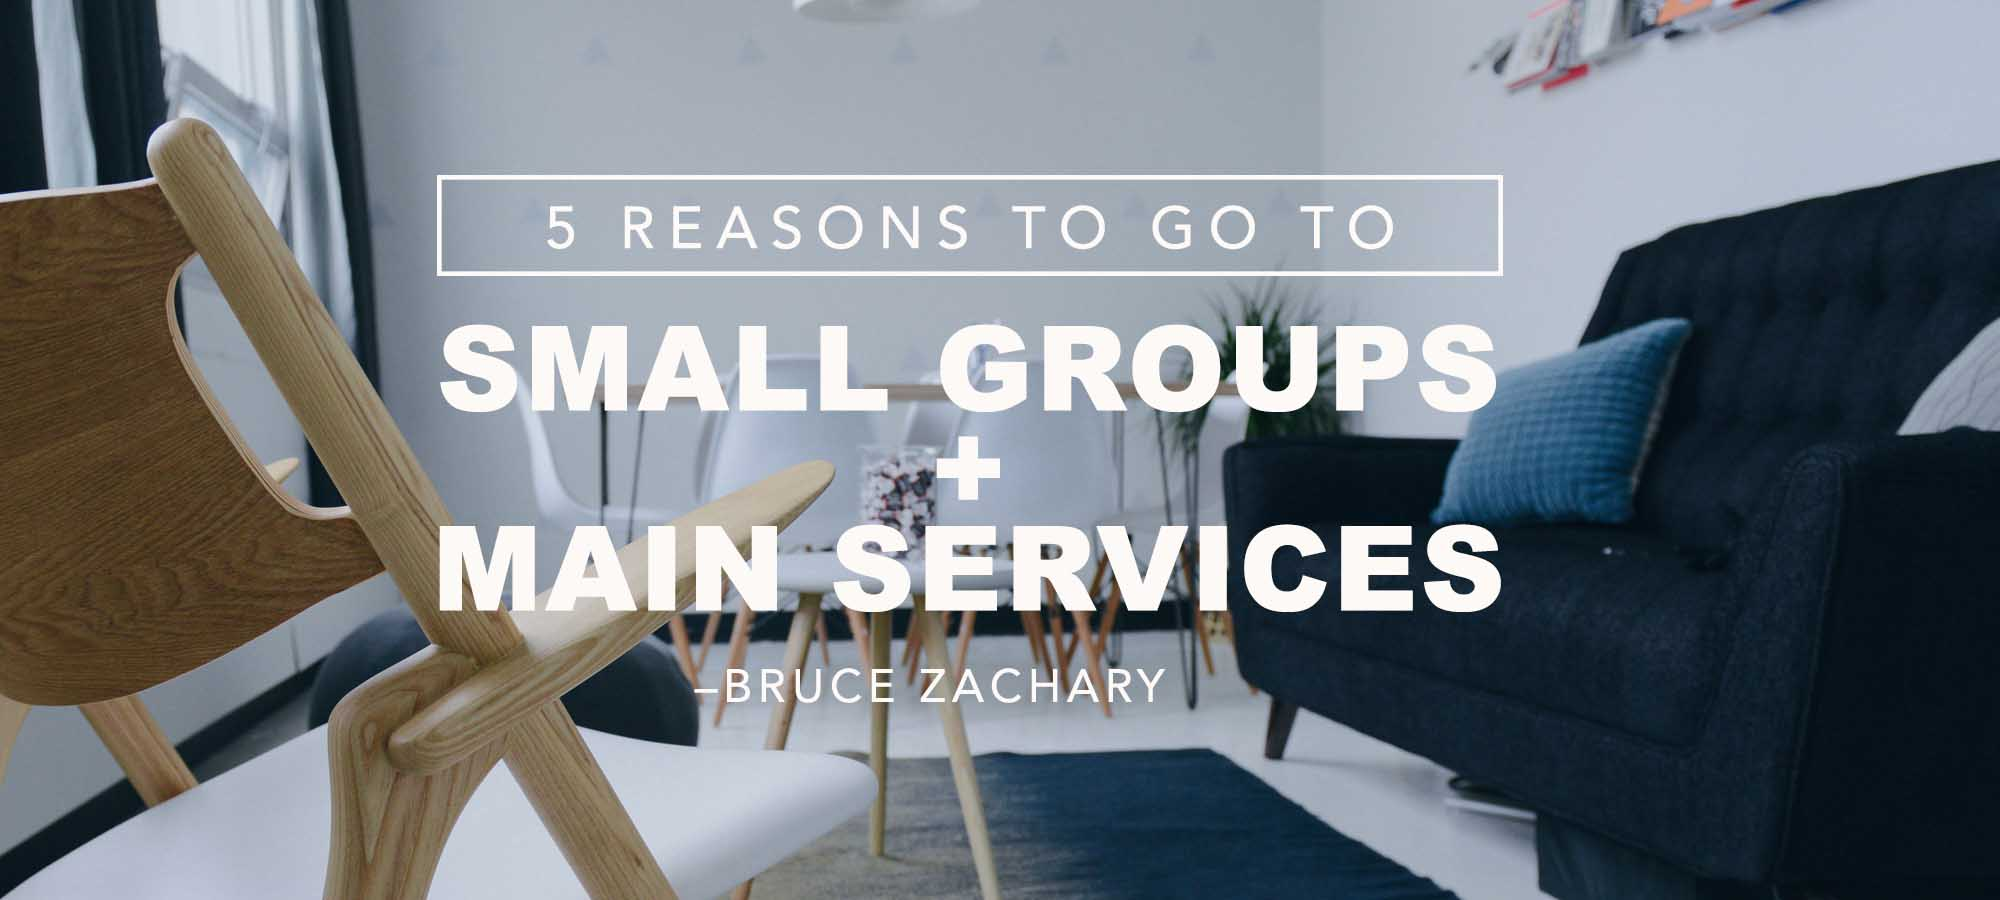 Five Reasons to go to Small Groups AND Main Services